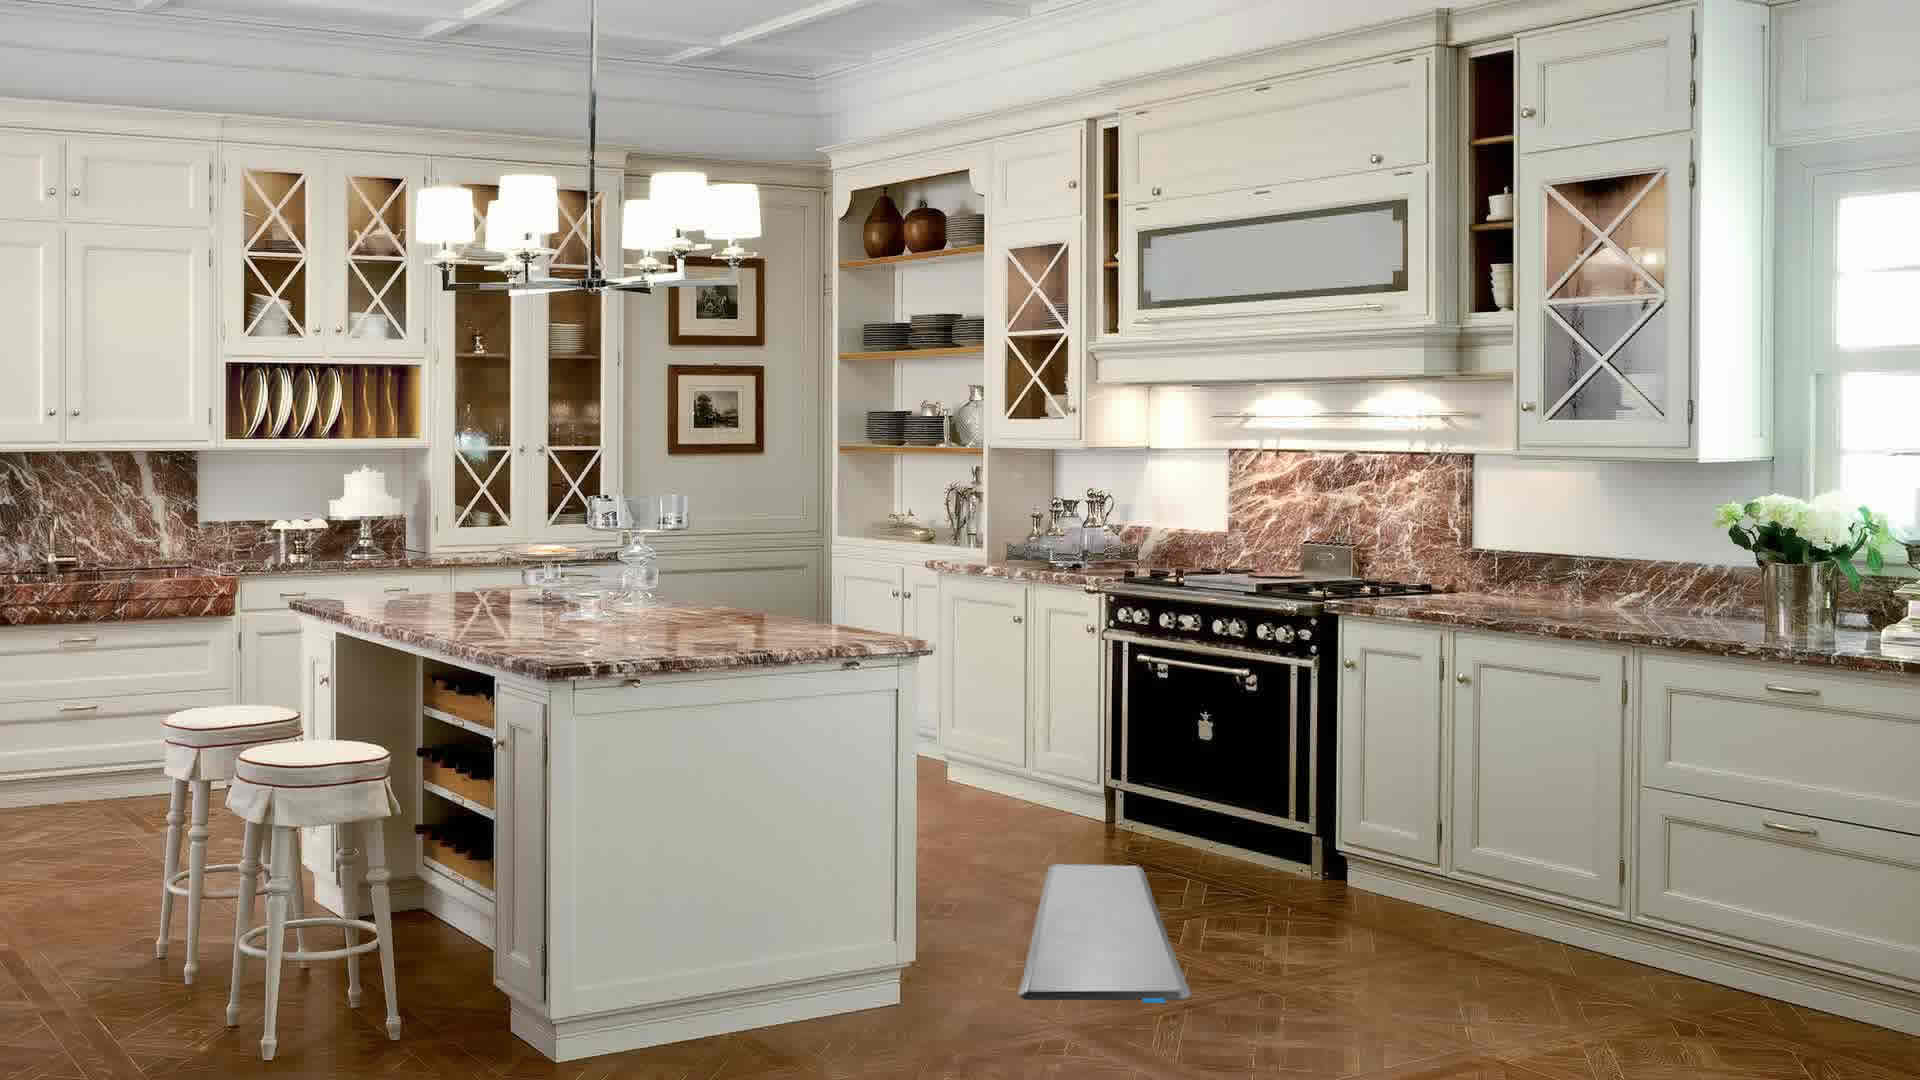 unique free standing kitchen cabinets with sinks free standing kitchen cabinets free standing kitchen cabinets with drawers free standing kitchen cabinets with sink free standing kitchen cabinets